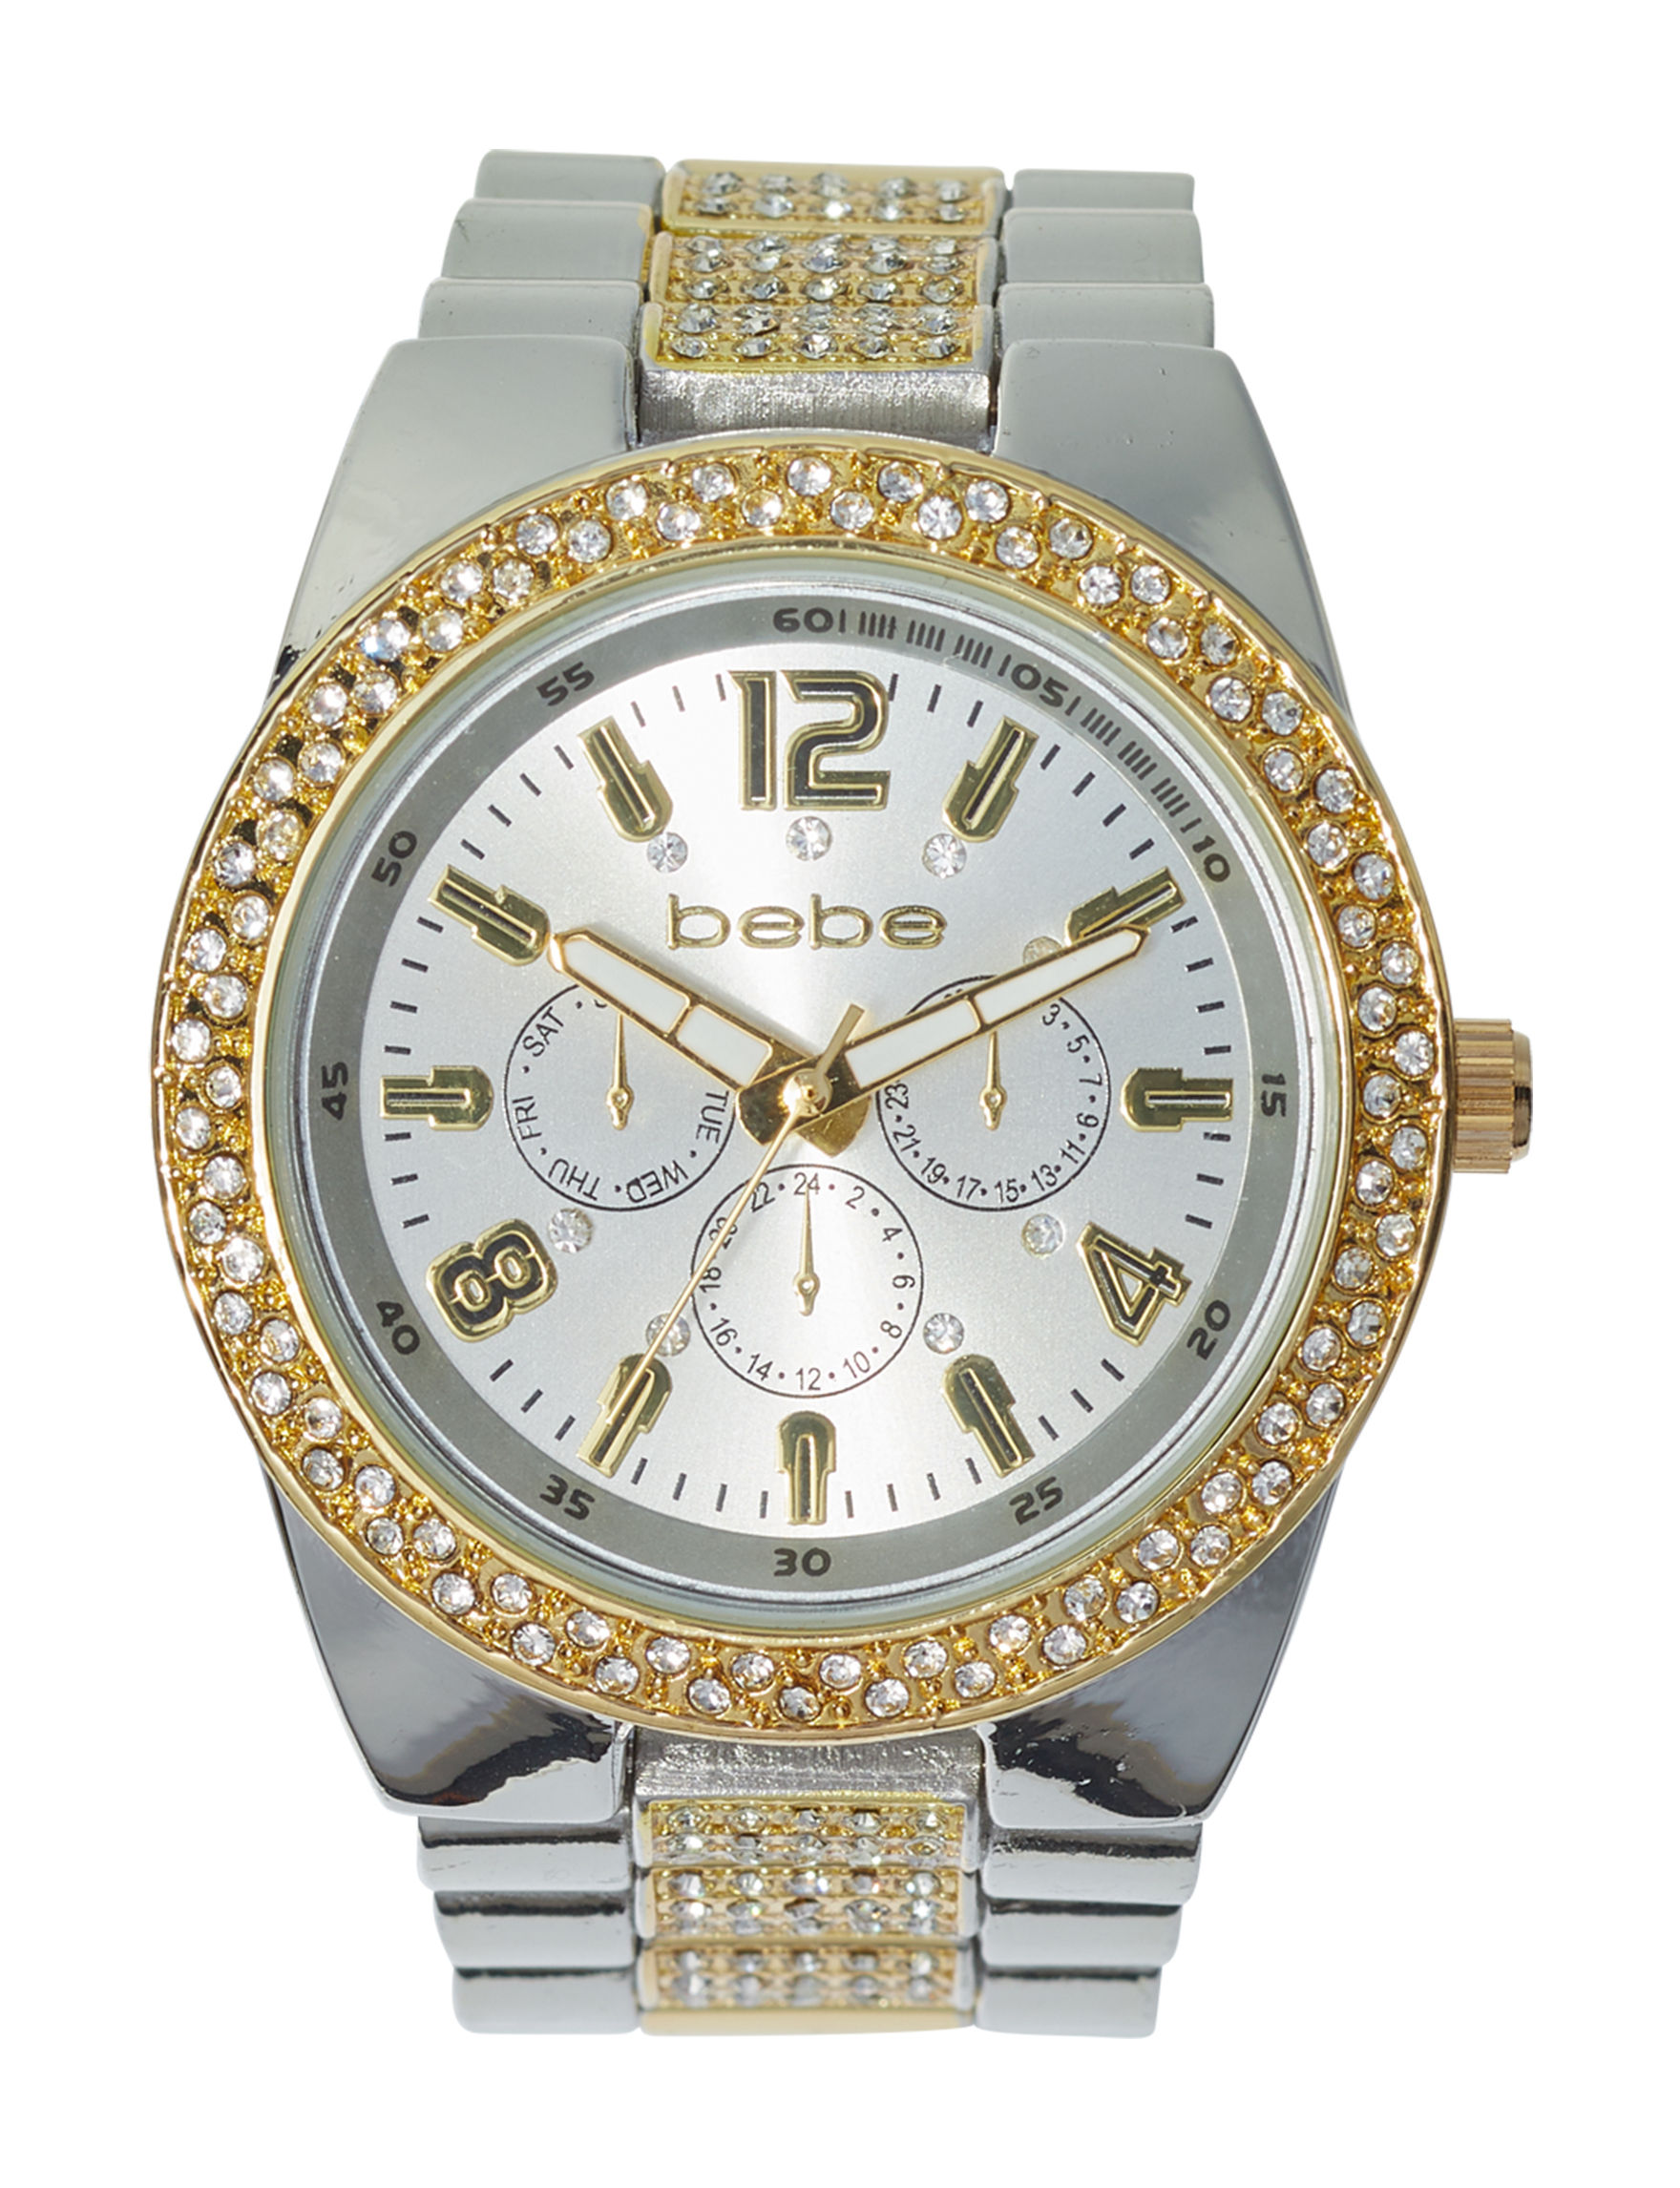 Bebe Silver / Gold Fashion Watches